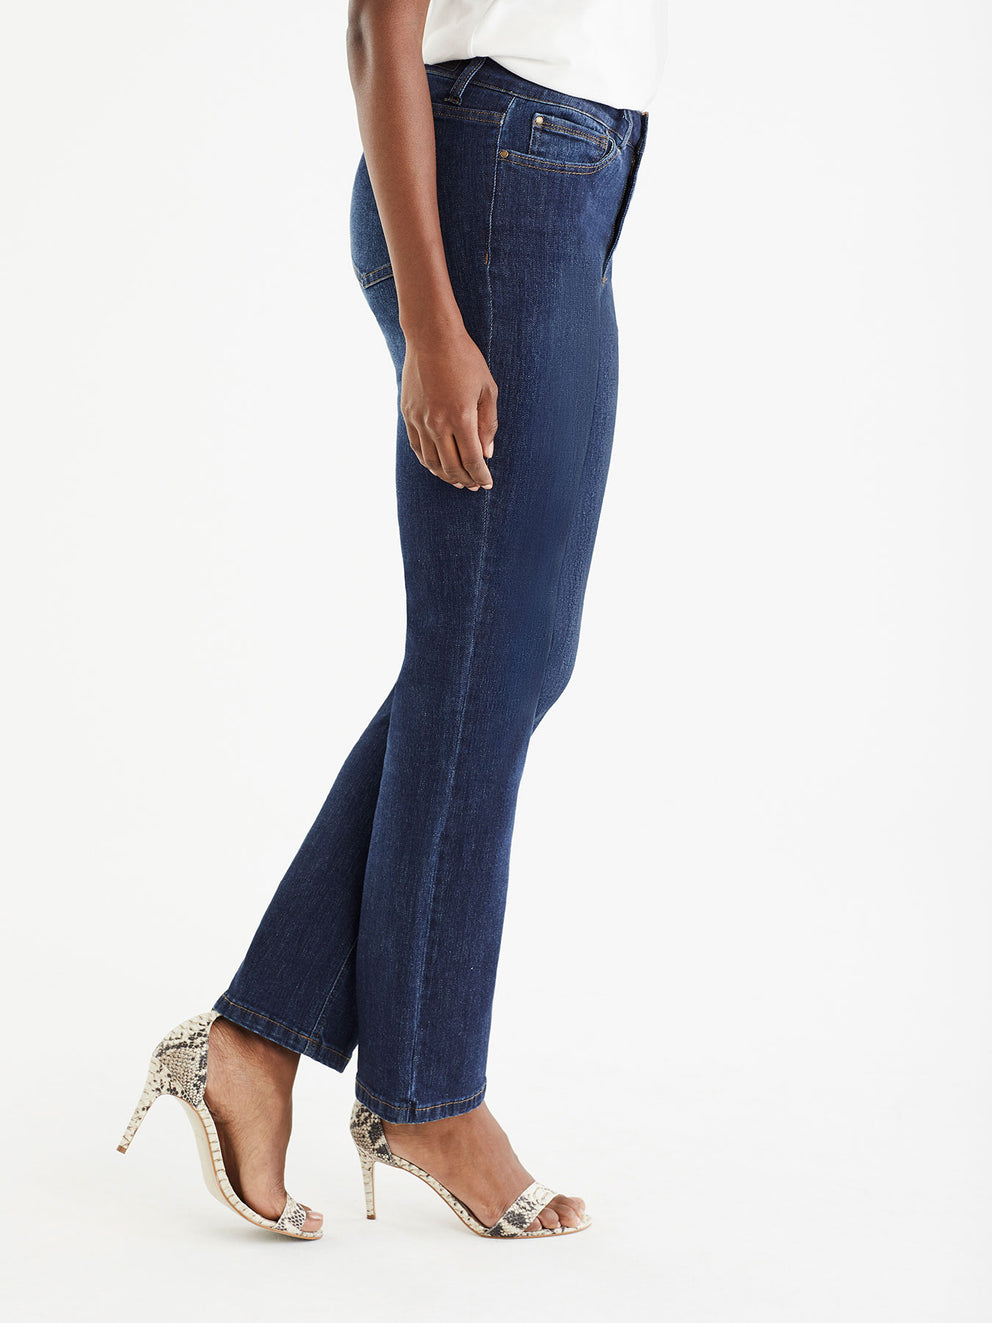 The Jones New York Lexington Deep Sky Wash Sustainable Jeans in color Deep Sky Wash - Image Position 2